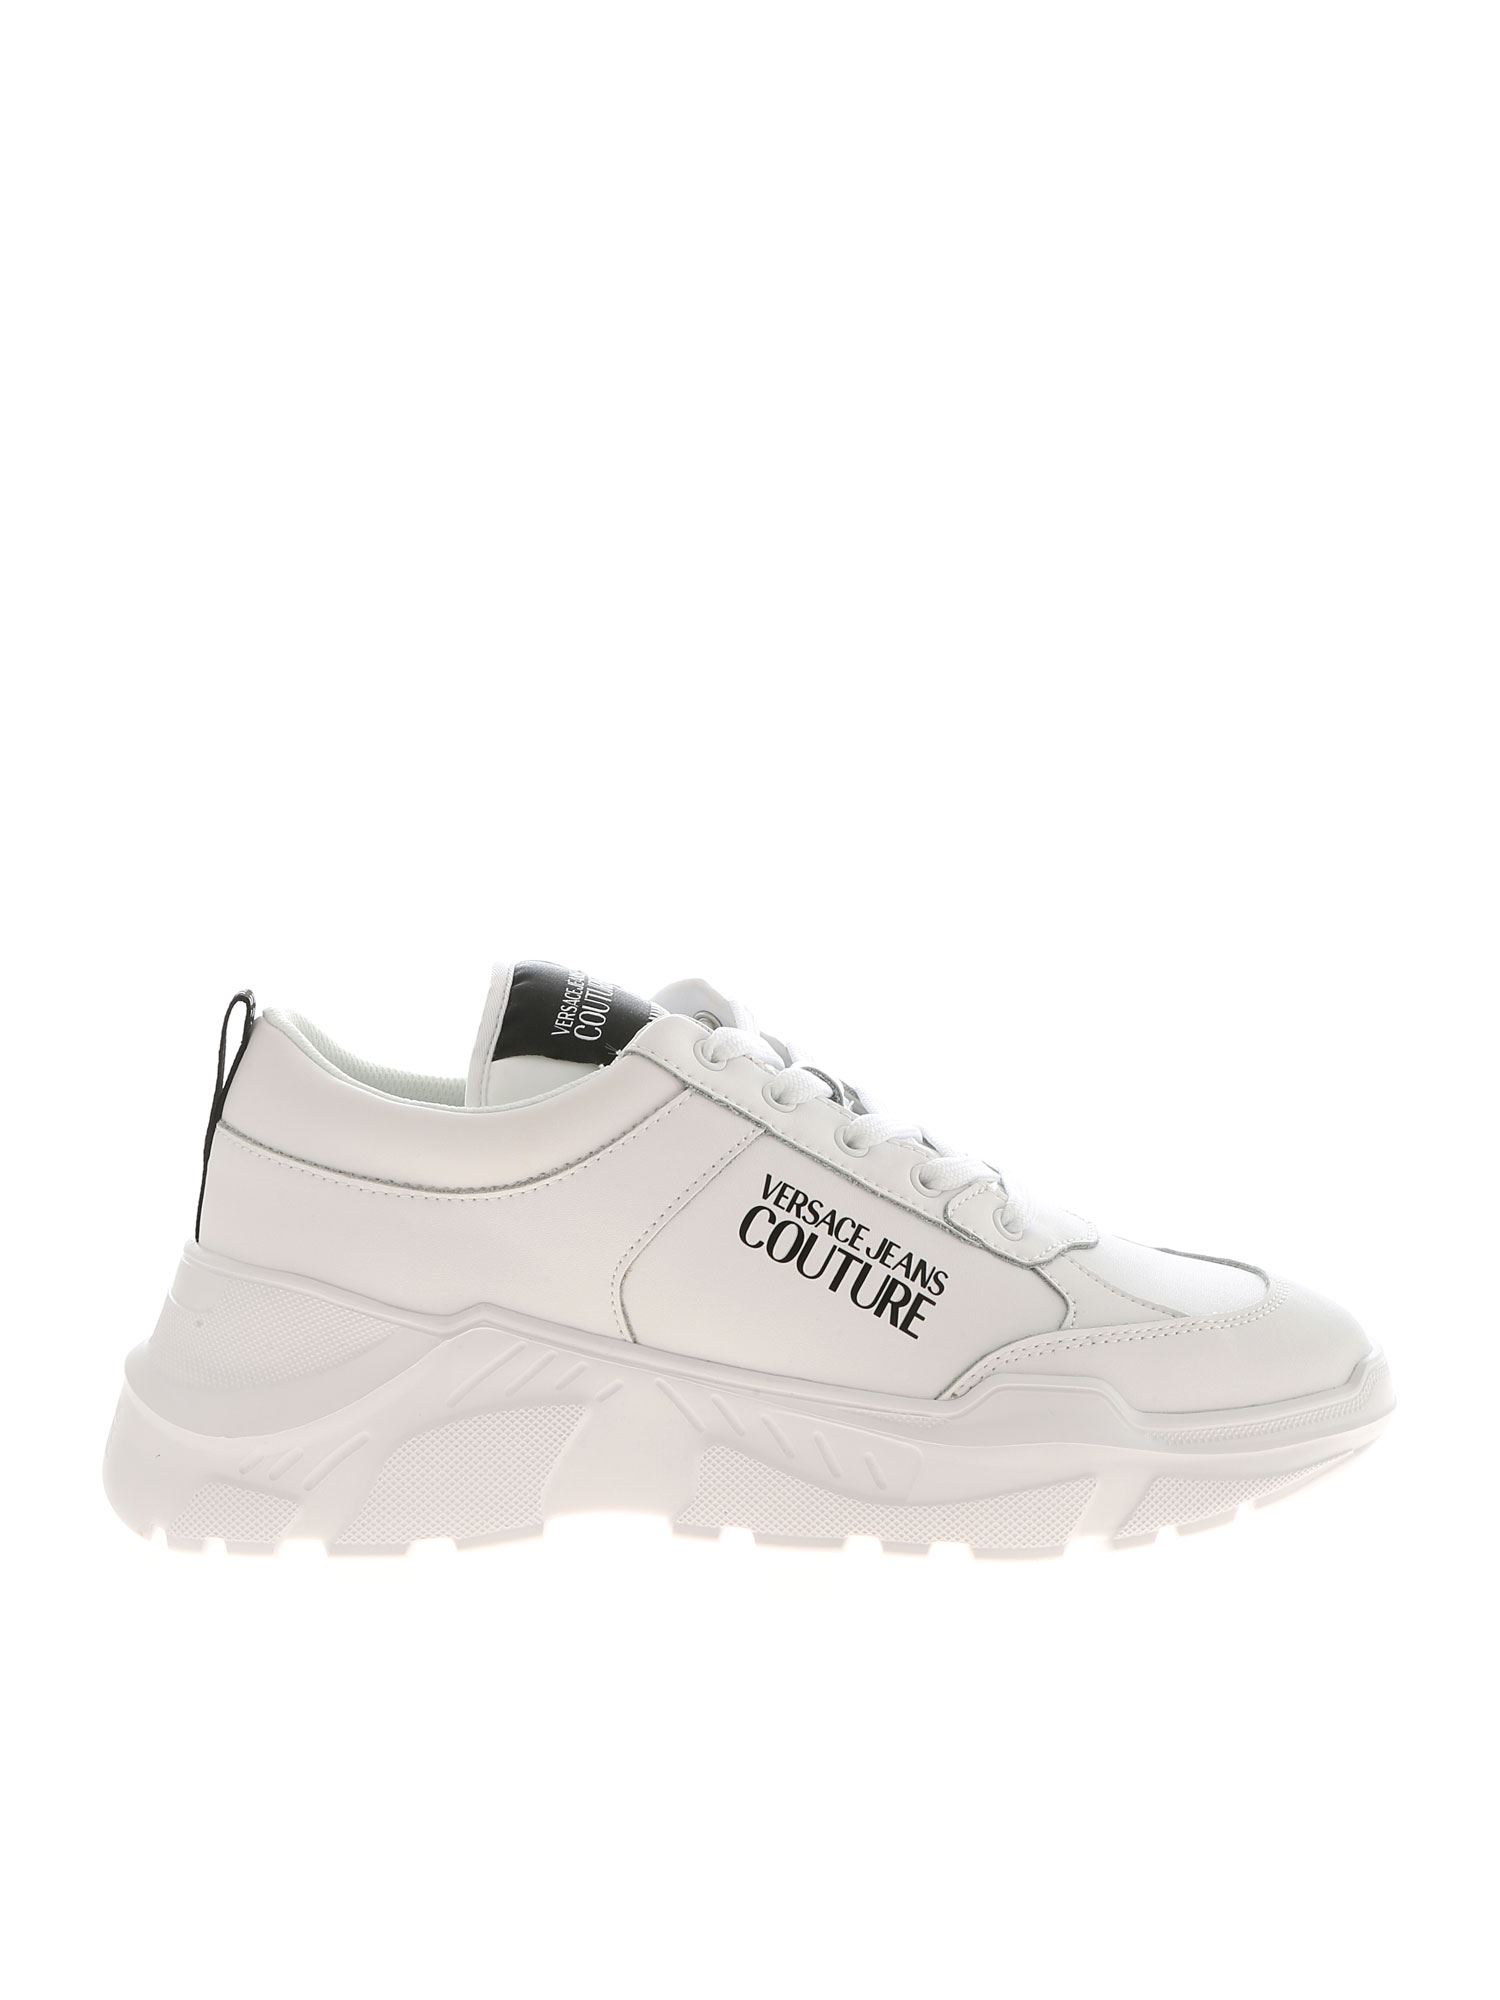 Versace Jeans Couture BLACK LOGO PRINT SNEAKERS IN WHITE